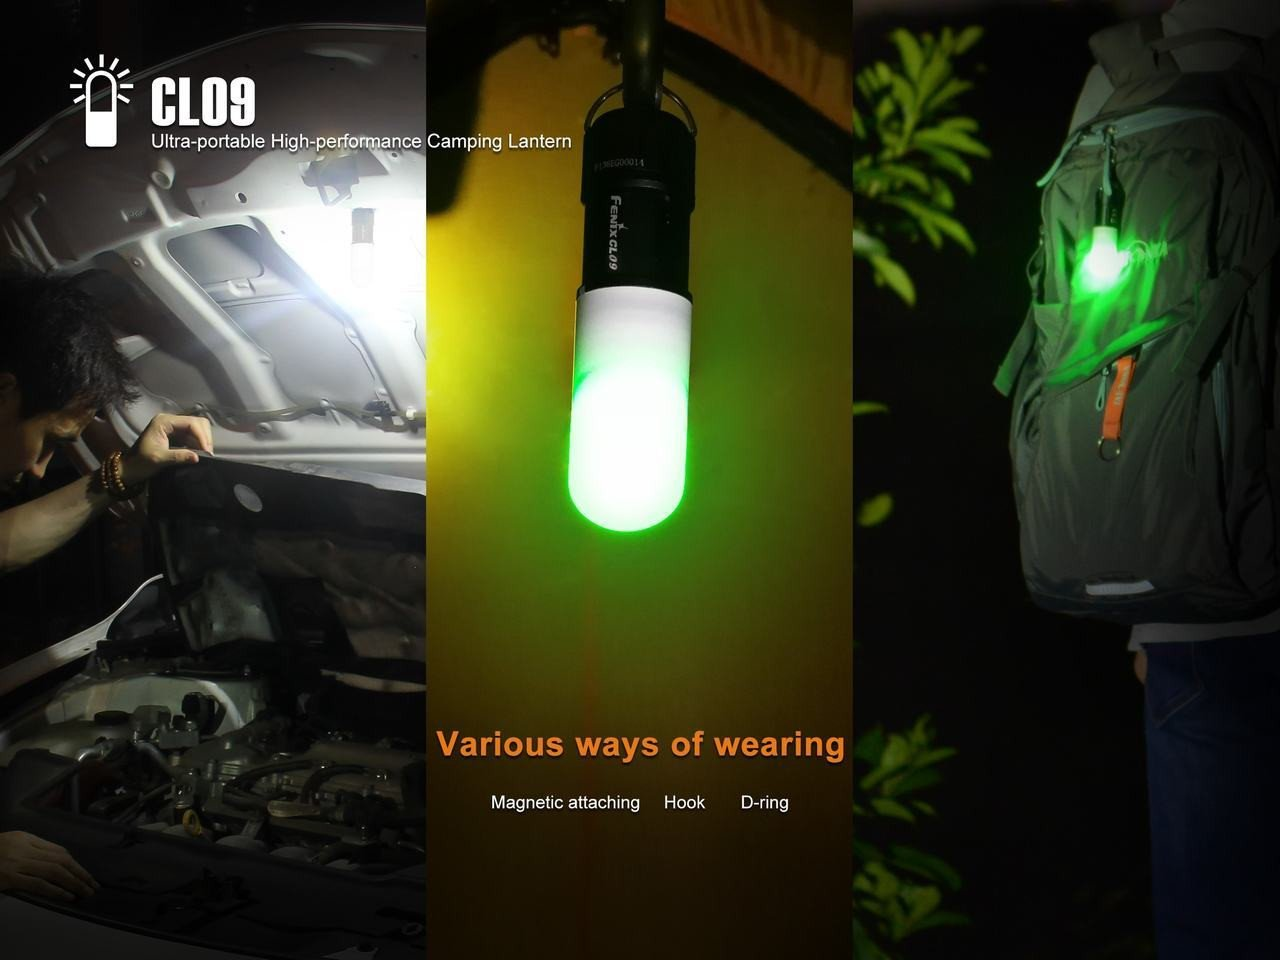 Fenix CL09, Fenix CL09 Camping lantern, Portable Light, Buy Online in India, Fenix New product 2017